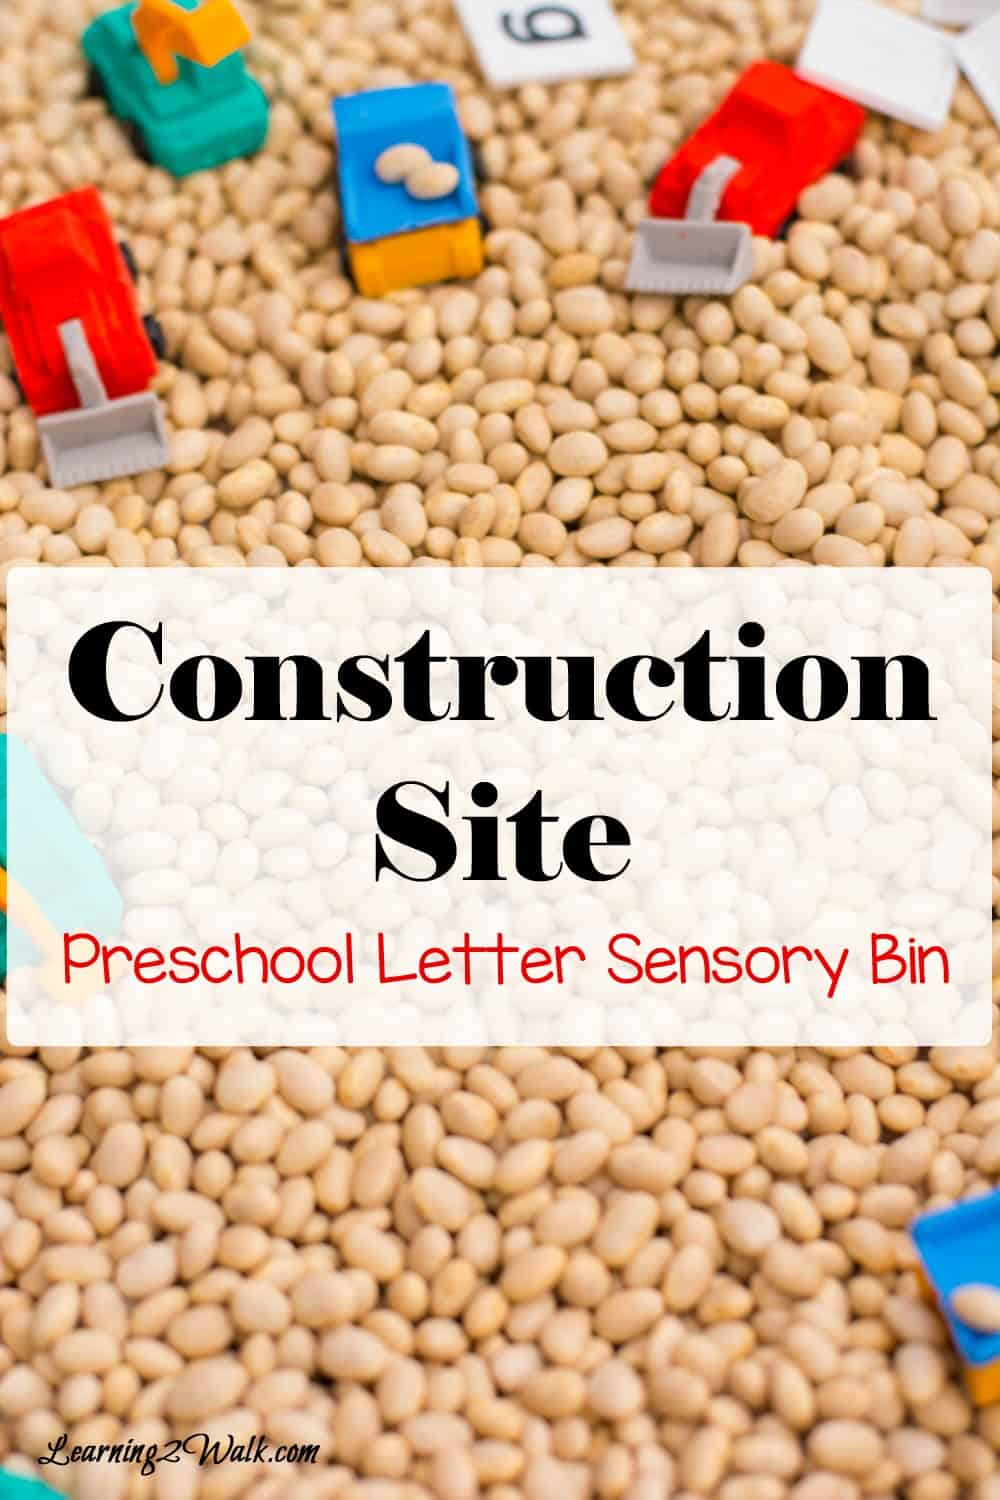 My son loved his construction site preschool letter activity sensory bin as it helped him work on his lower case letters